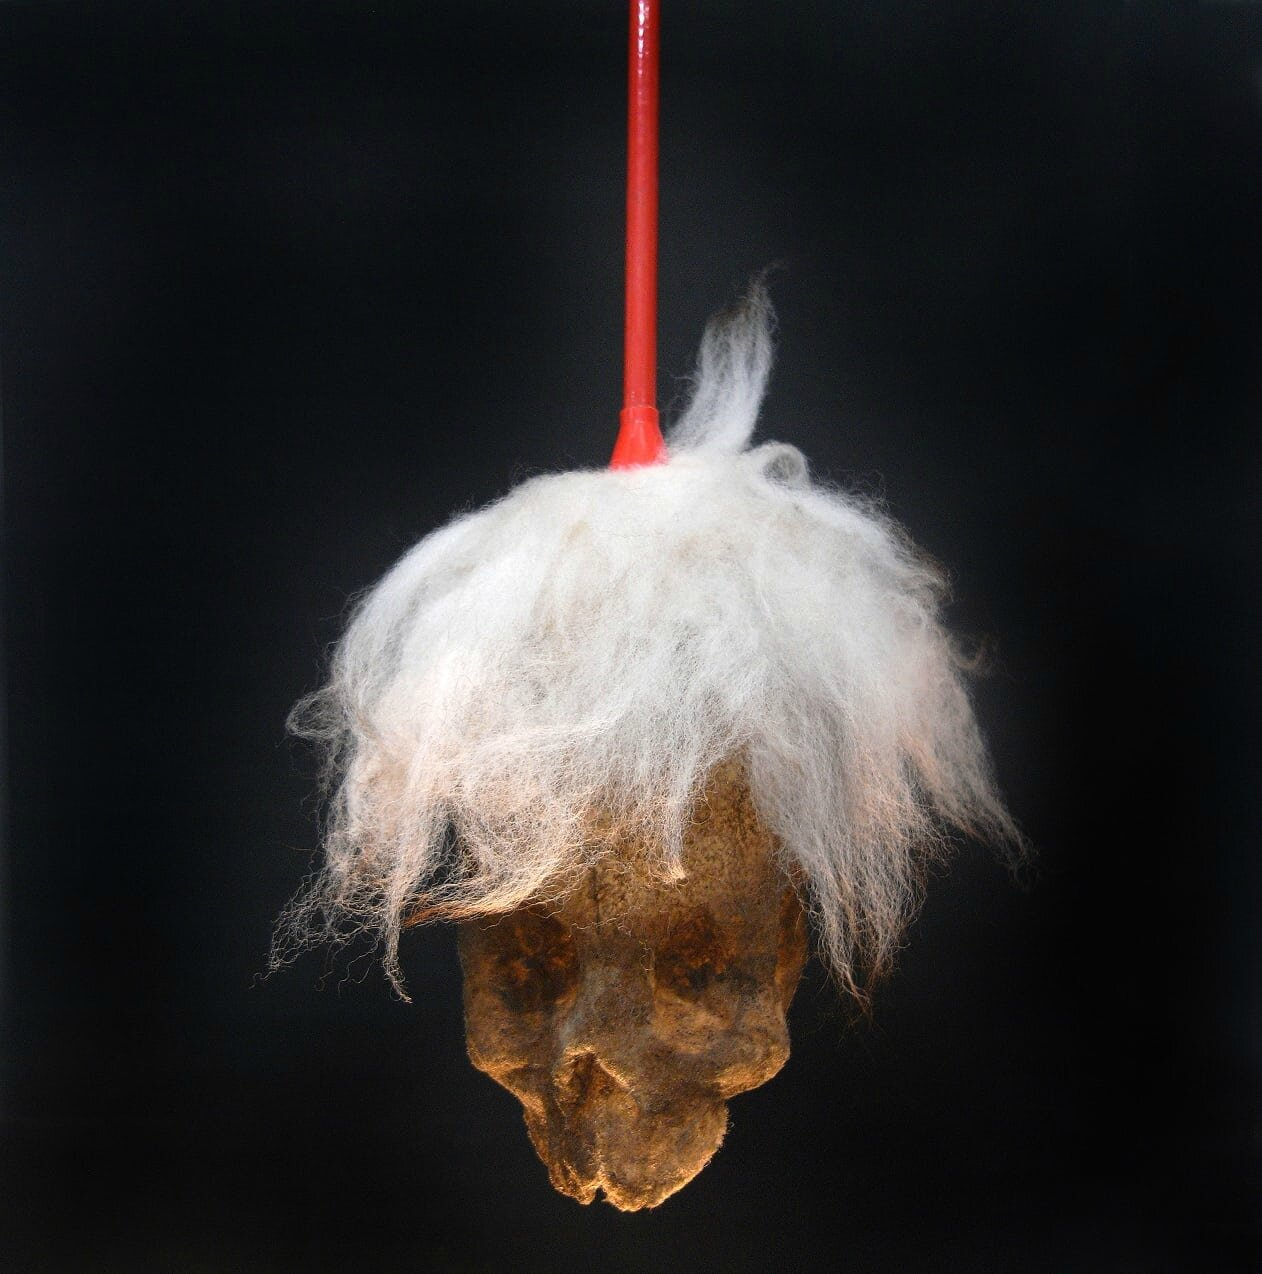 Paul Hazelton's Fright Wig, made from a duster and glued household dust